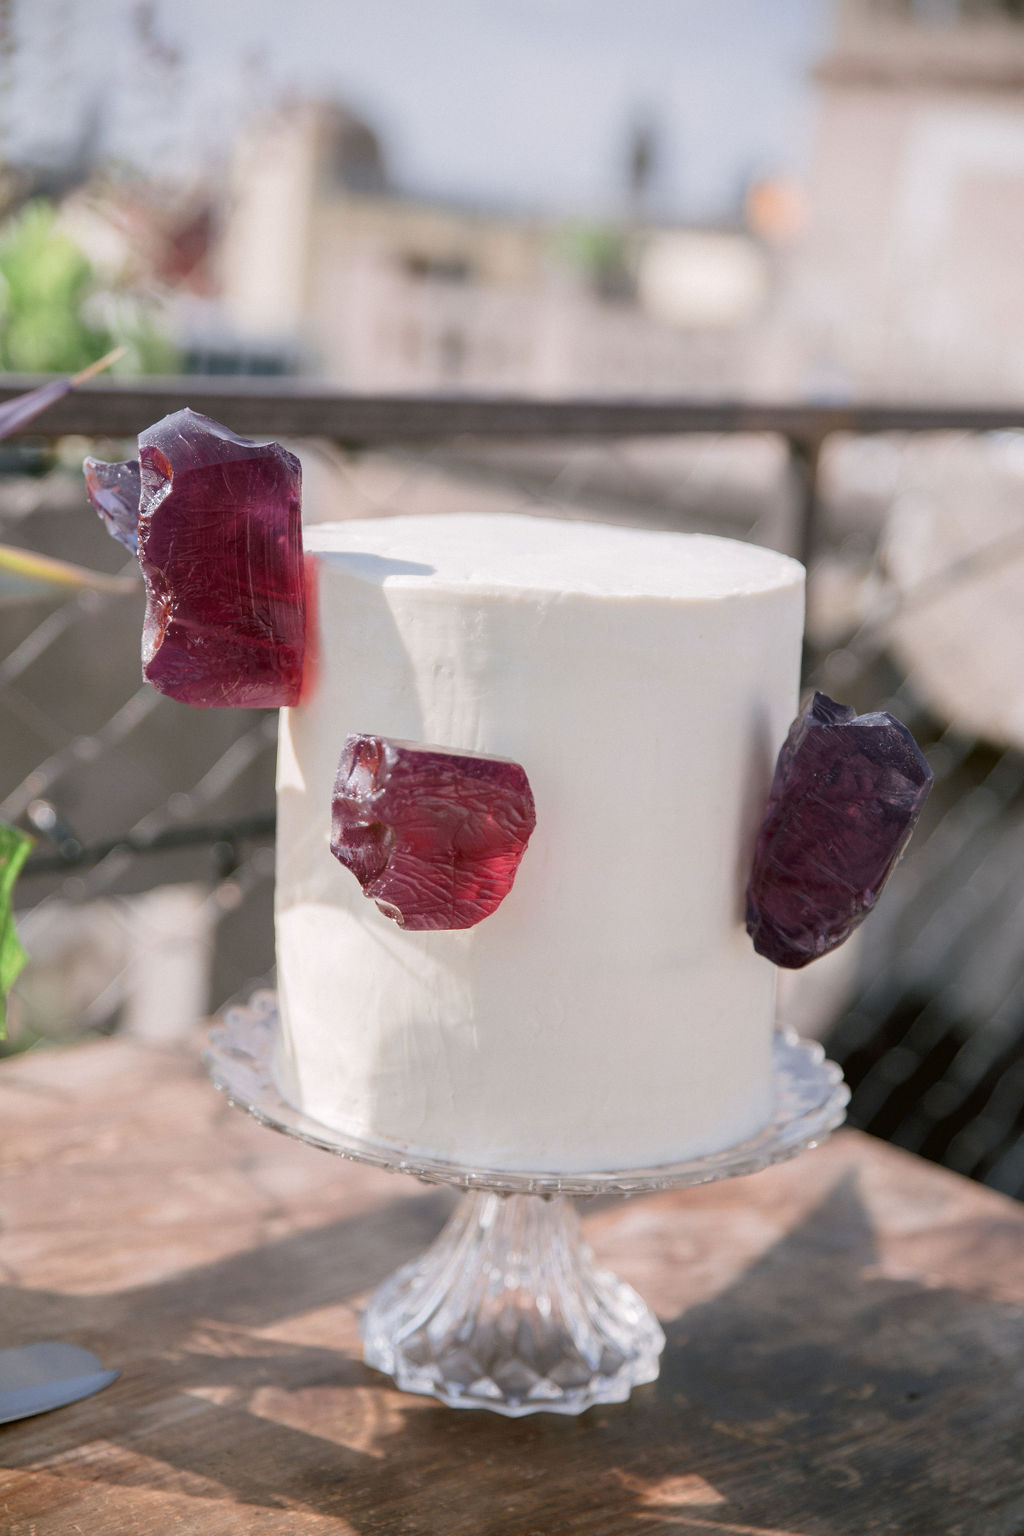 White wedding cake with purple glass pieces made from jelly